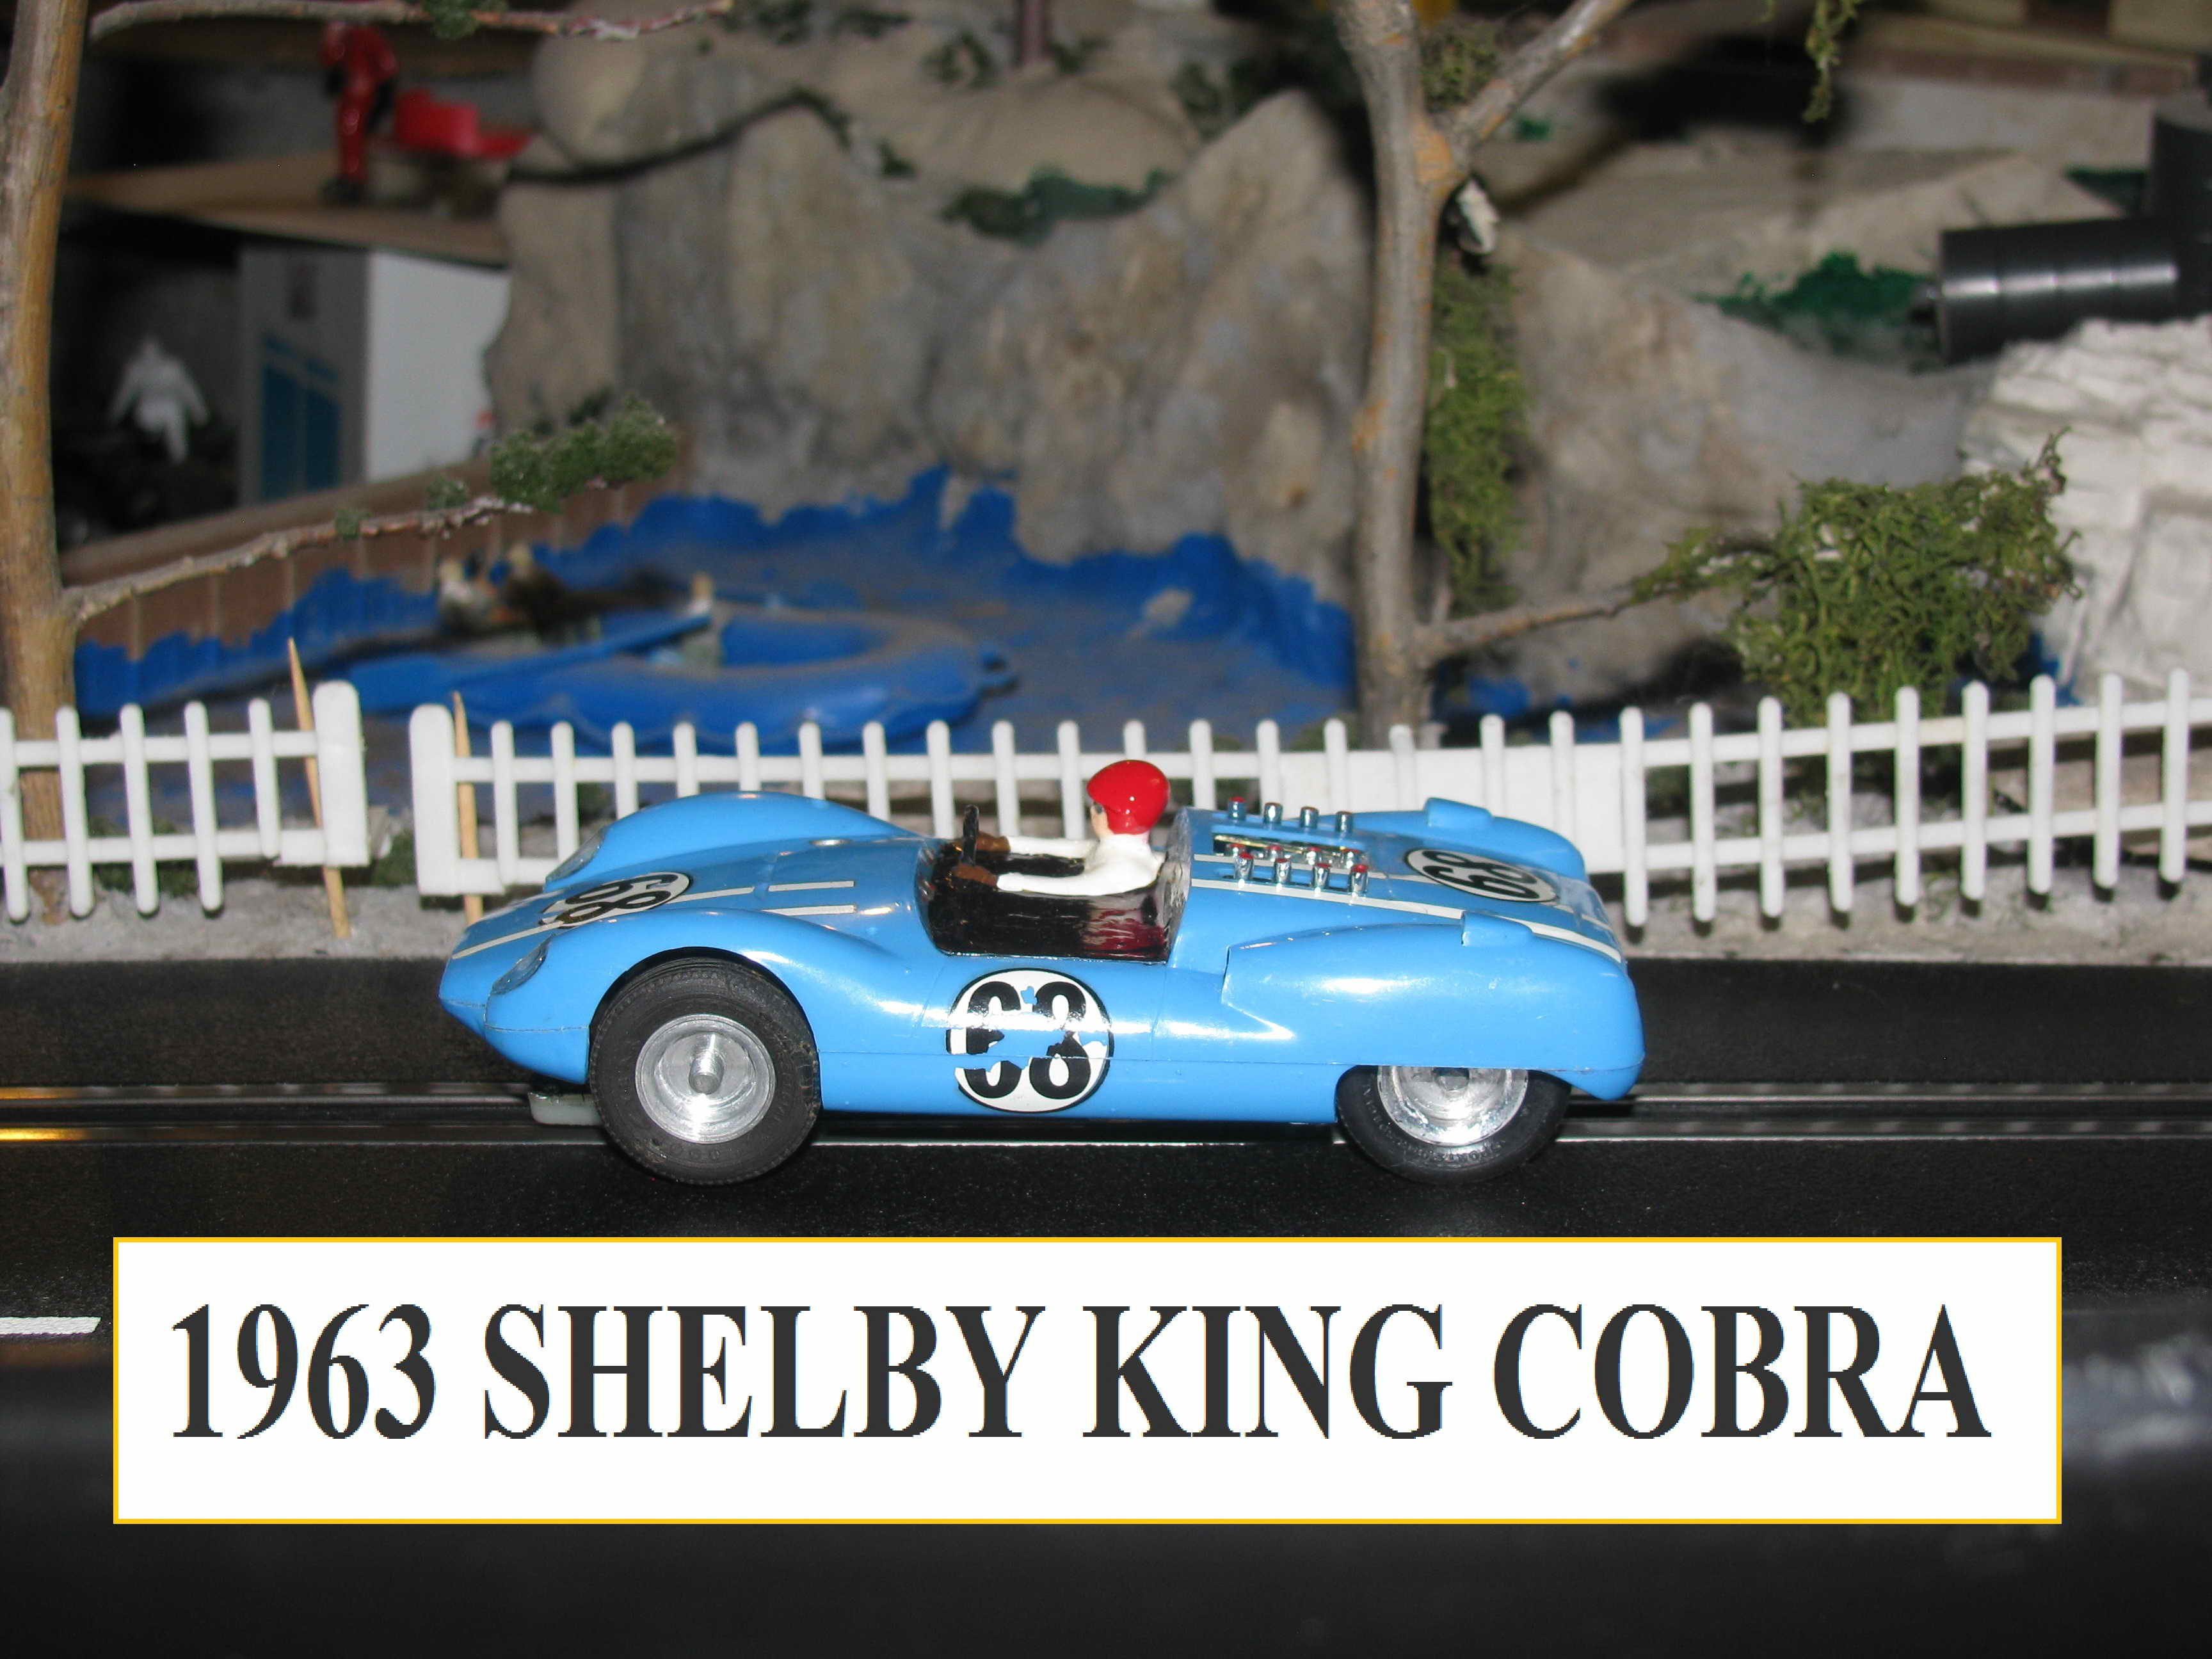 *SOLD* MONOGRAM SLOT CAR 1963 SHELBY KING COBRA #68 GOOD CONDITION WITH SOME MODS